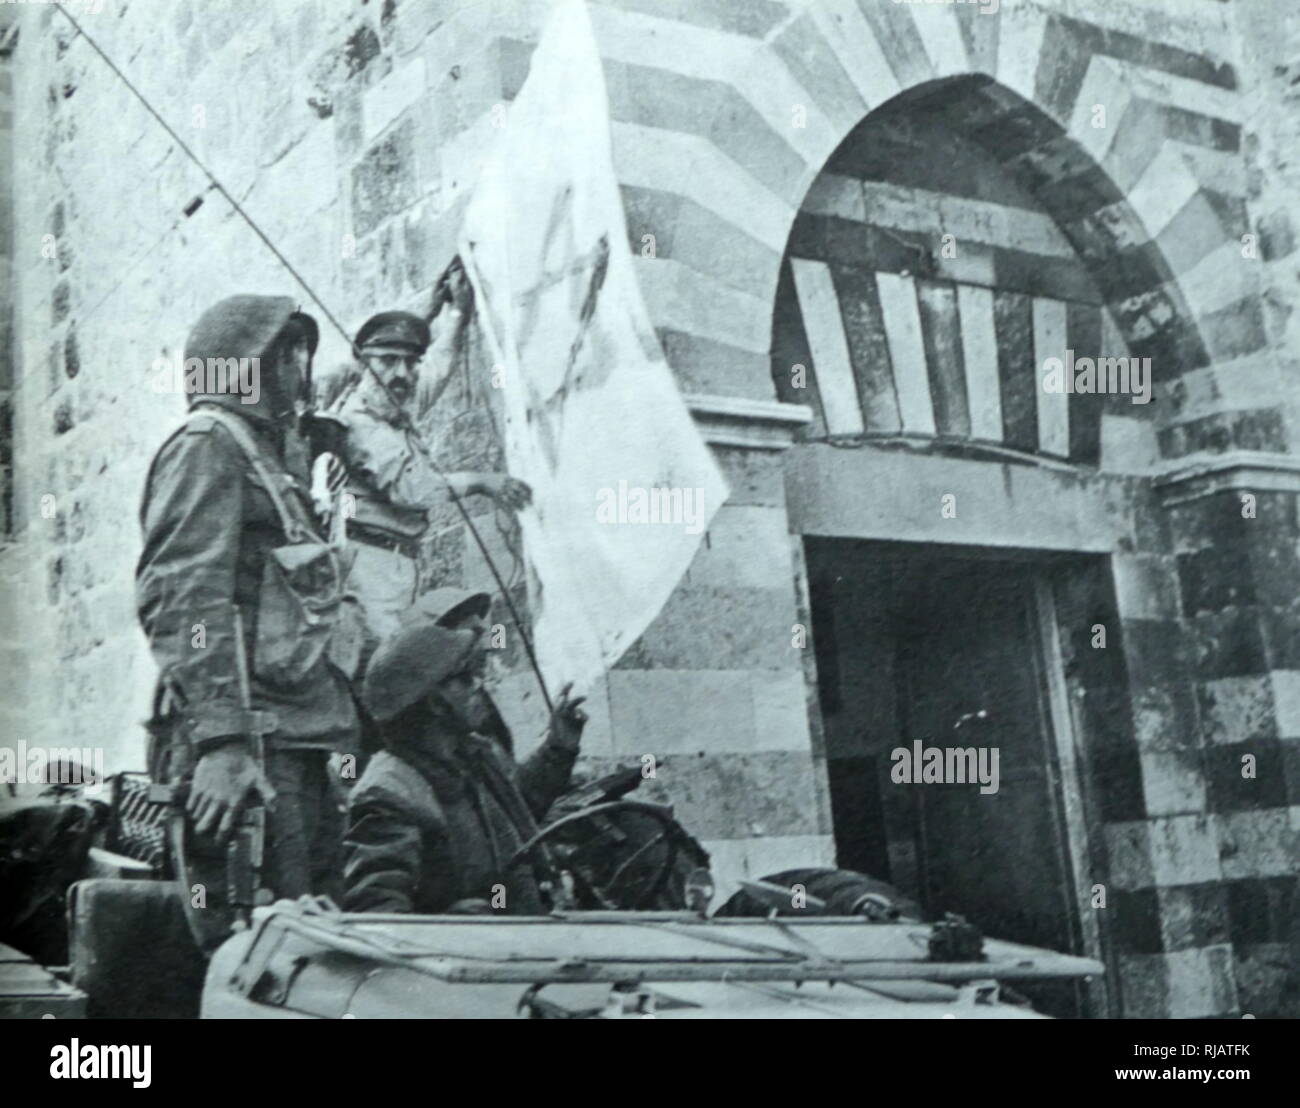 During the Six Day war in 1967, Israeli soldiers enter Hebron accompanied by Shlomo Goren (1917 - 1994), head of the Military Rabbinate of the Israel Defense Forces, (subsequently Ashkenazi Chief Rabbi of Israel from 1973 to 1983), - Stock Image